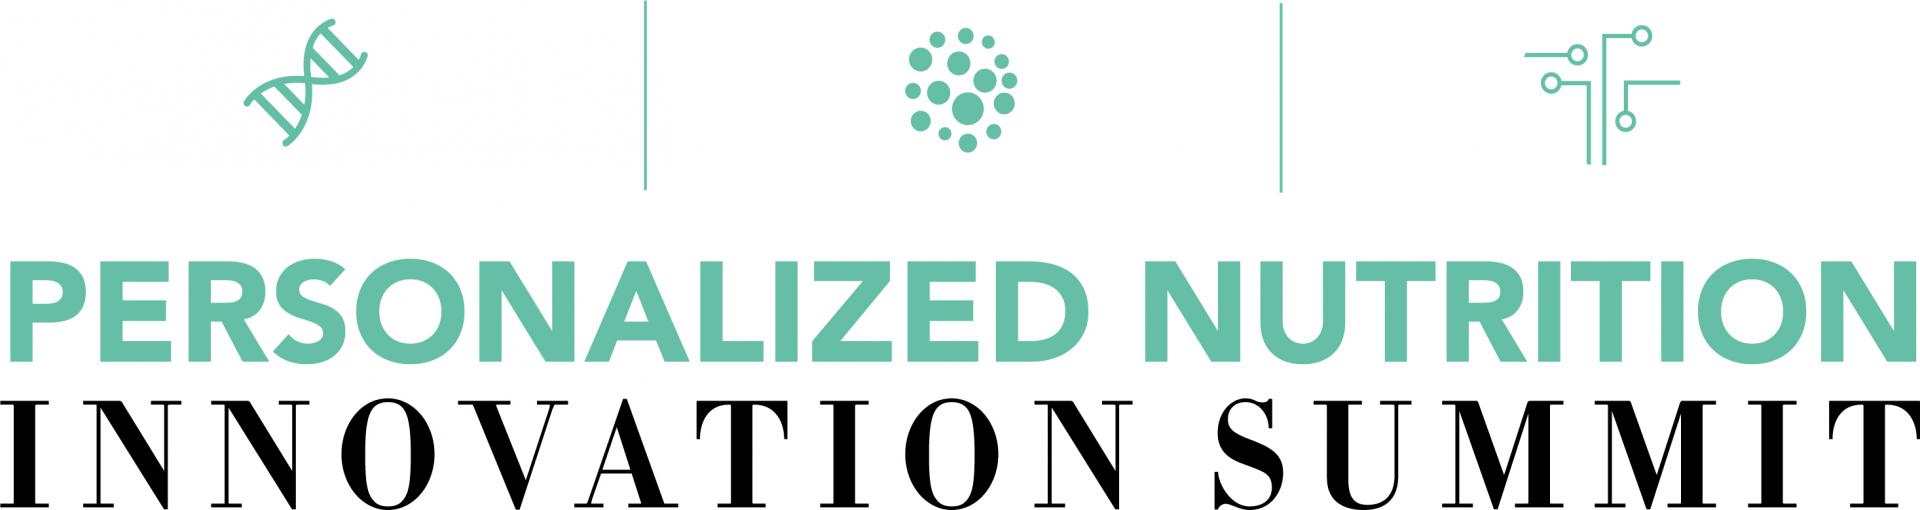 Personalized Nutrition Innovation Summit 2018